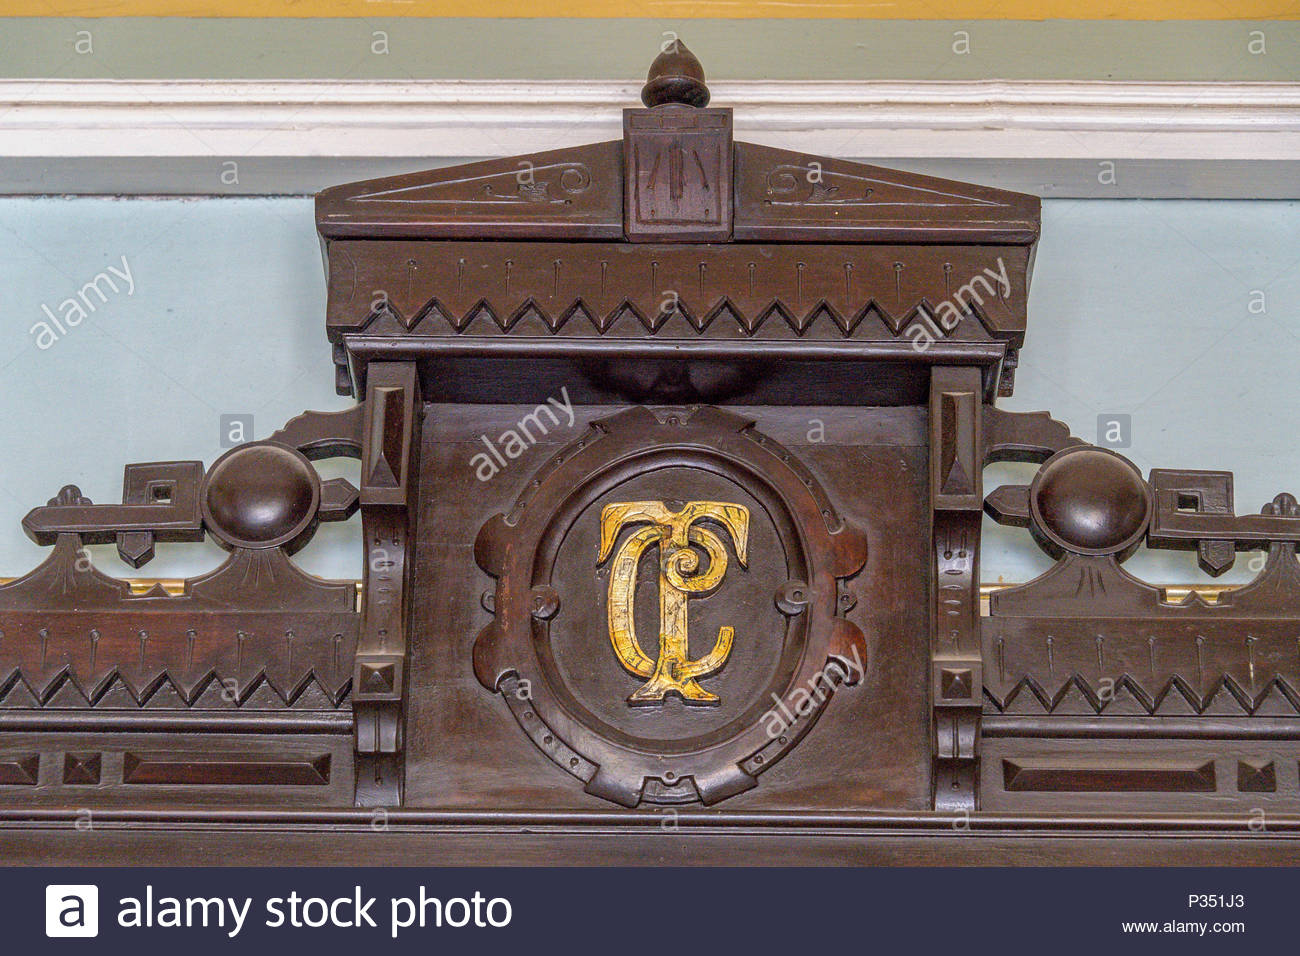 Logo of the Charity Theater or Teatro Caridad engraved on wooden upper part  of an antique furniture. DATE: July 25, 2016 - Logo Of The Charity Theater Or Teatro Caridad Engraved On Wooden